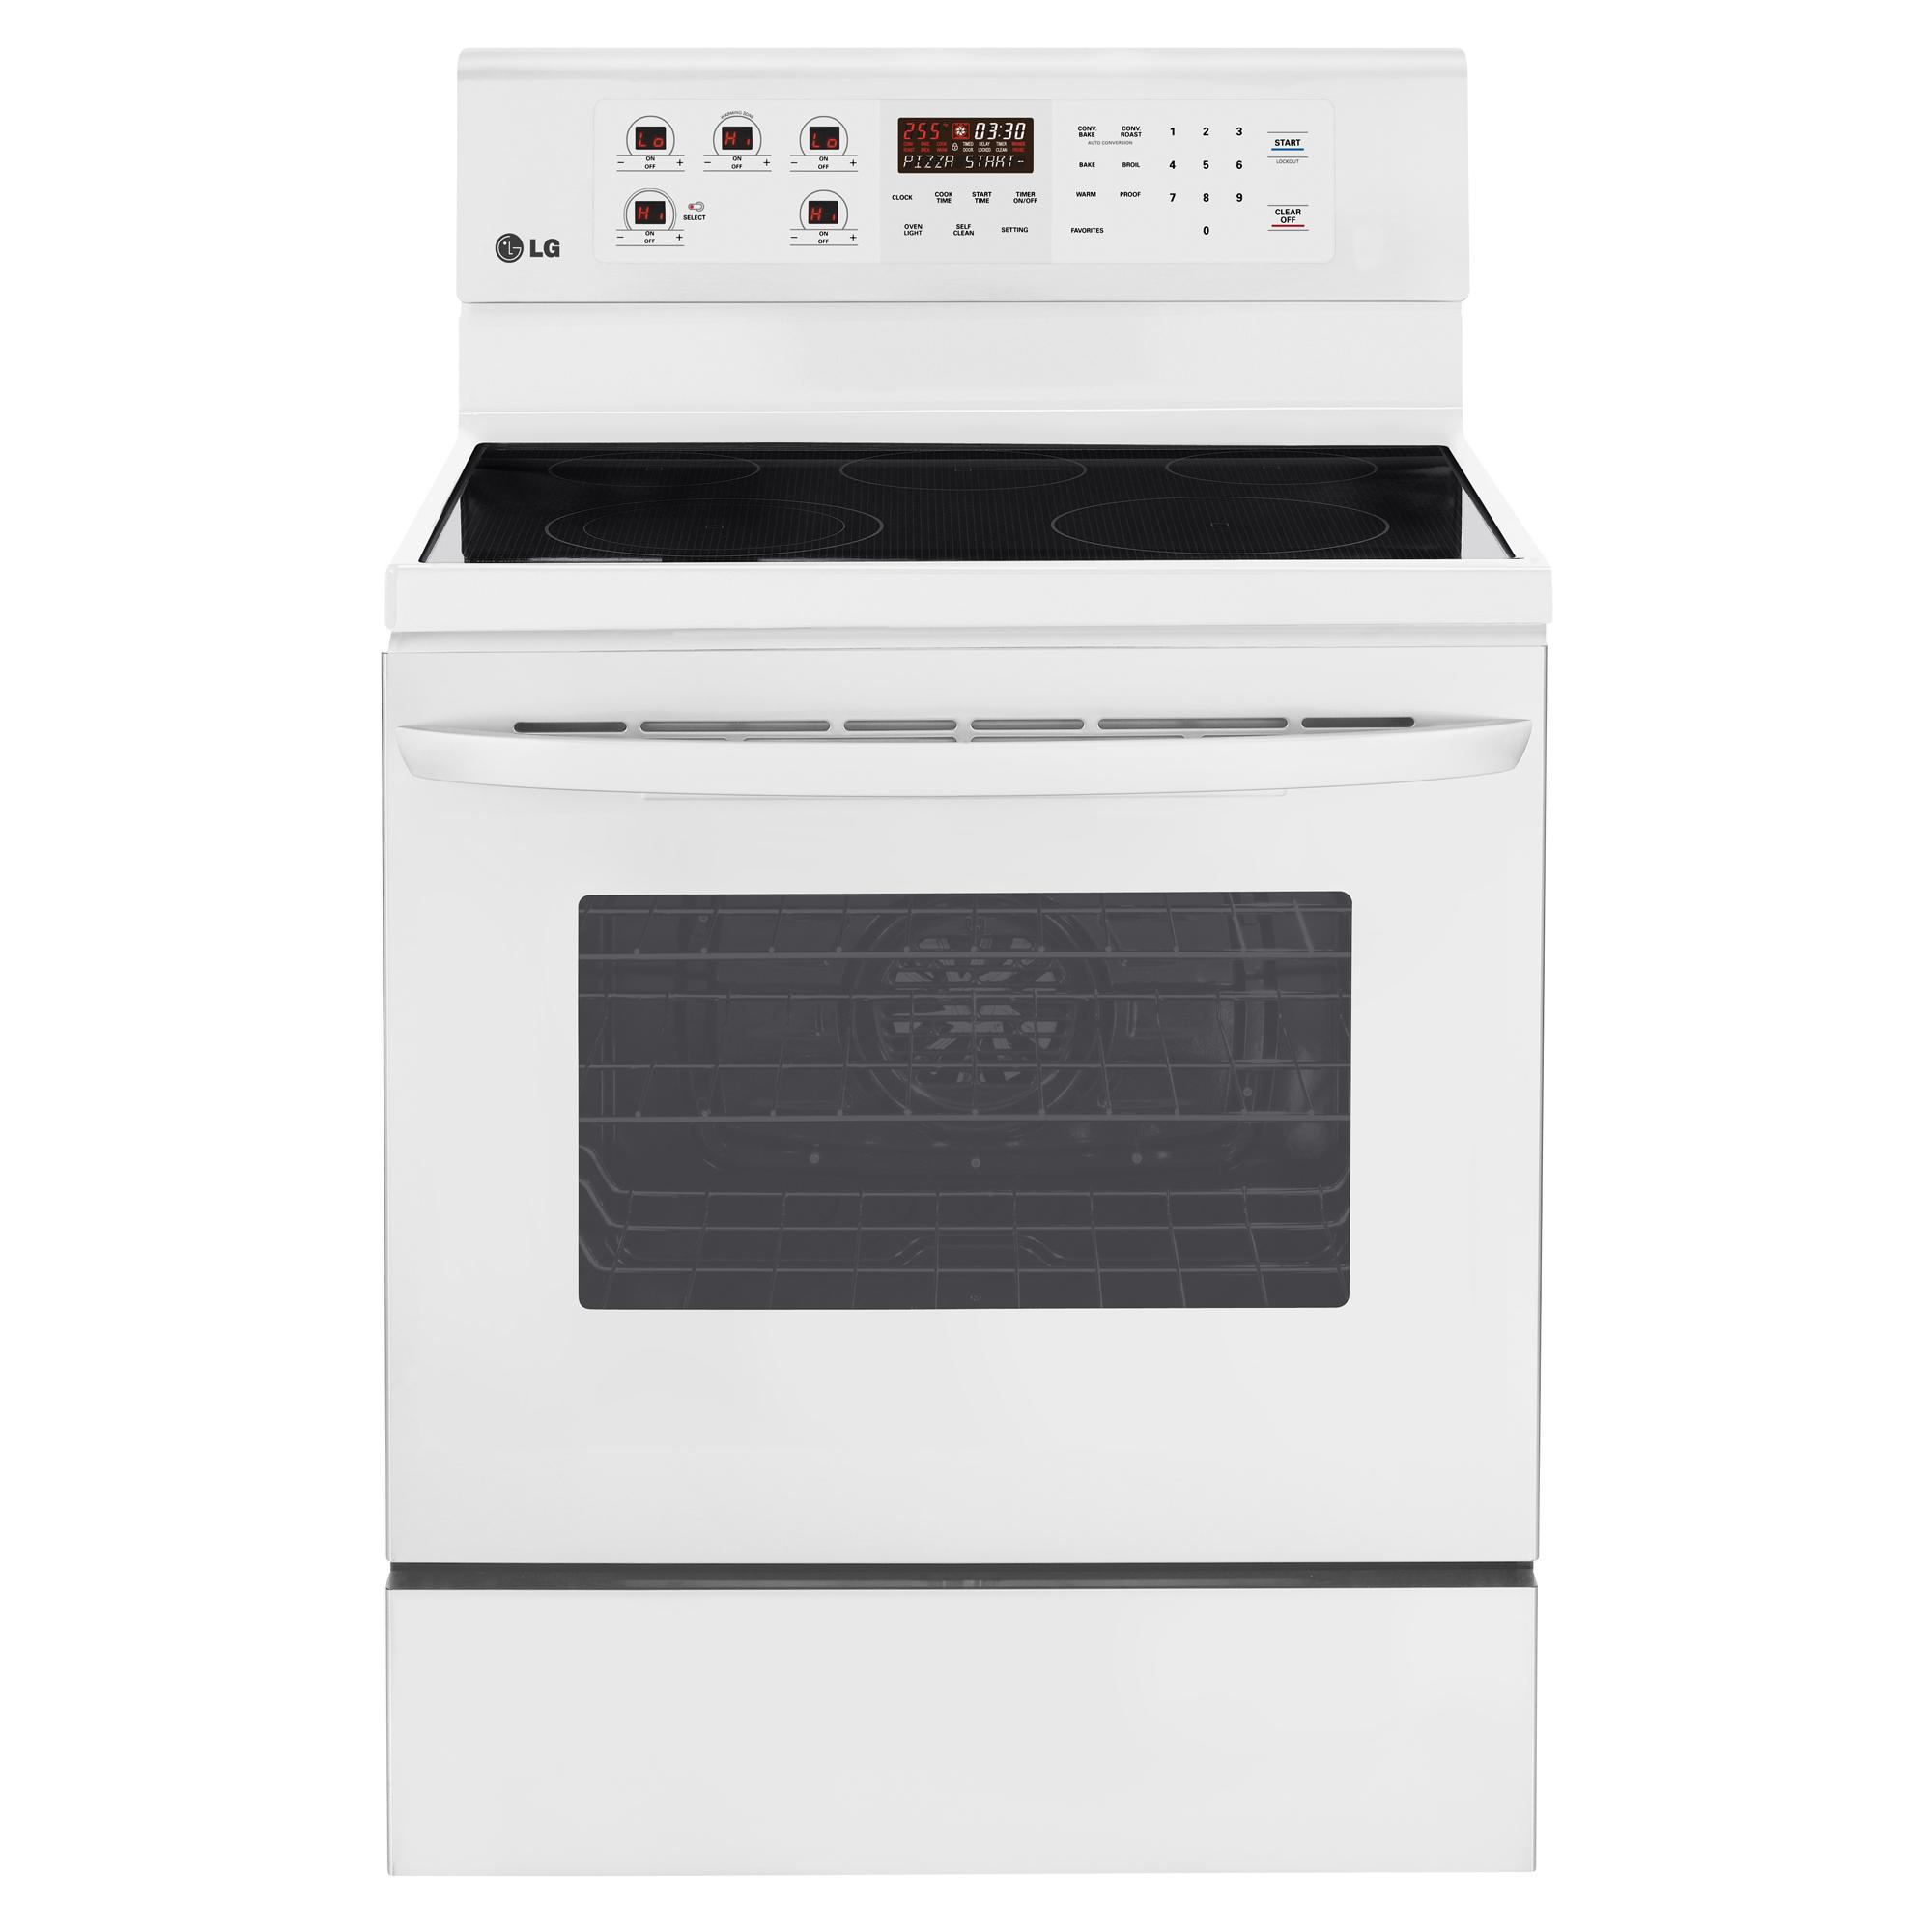 "LG Appliances Electric Ranges 30"" Freestanding Electric Range - Item Number: LRE3083SW"